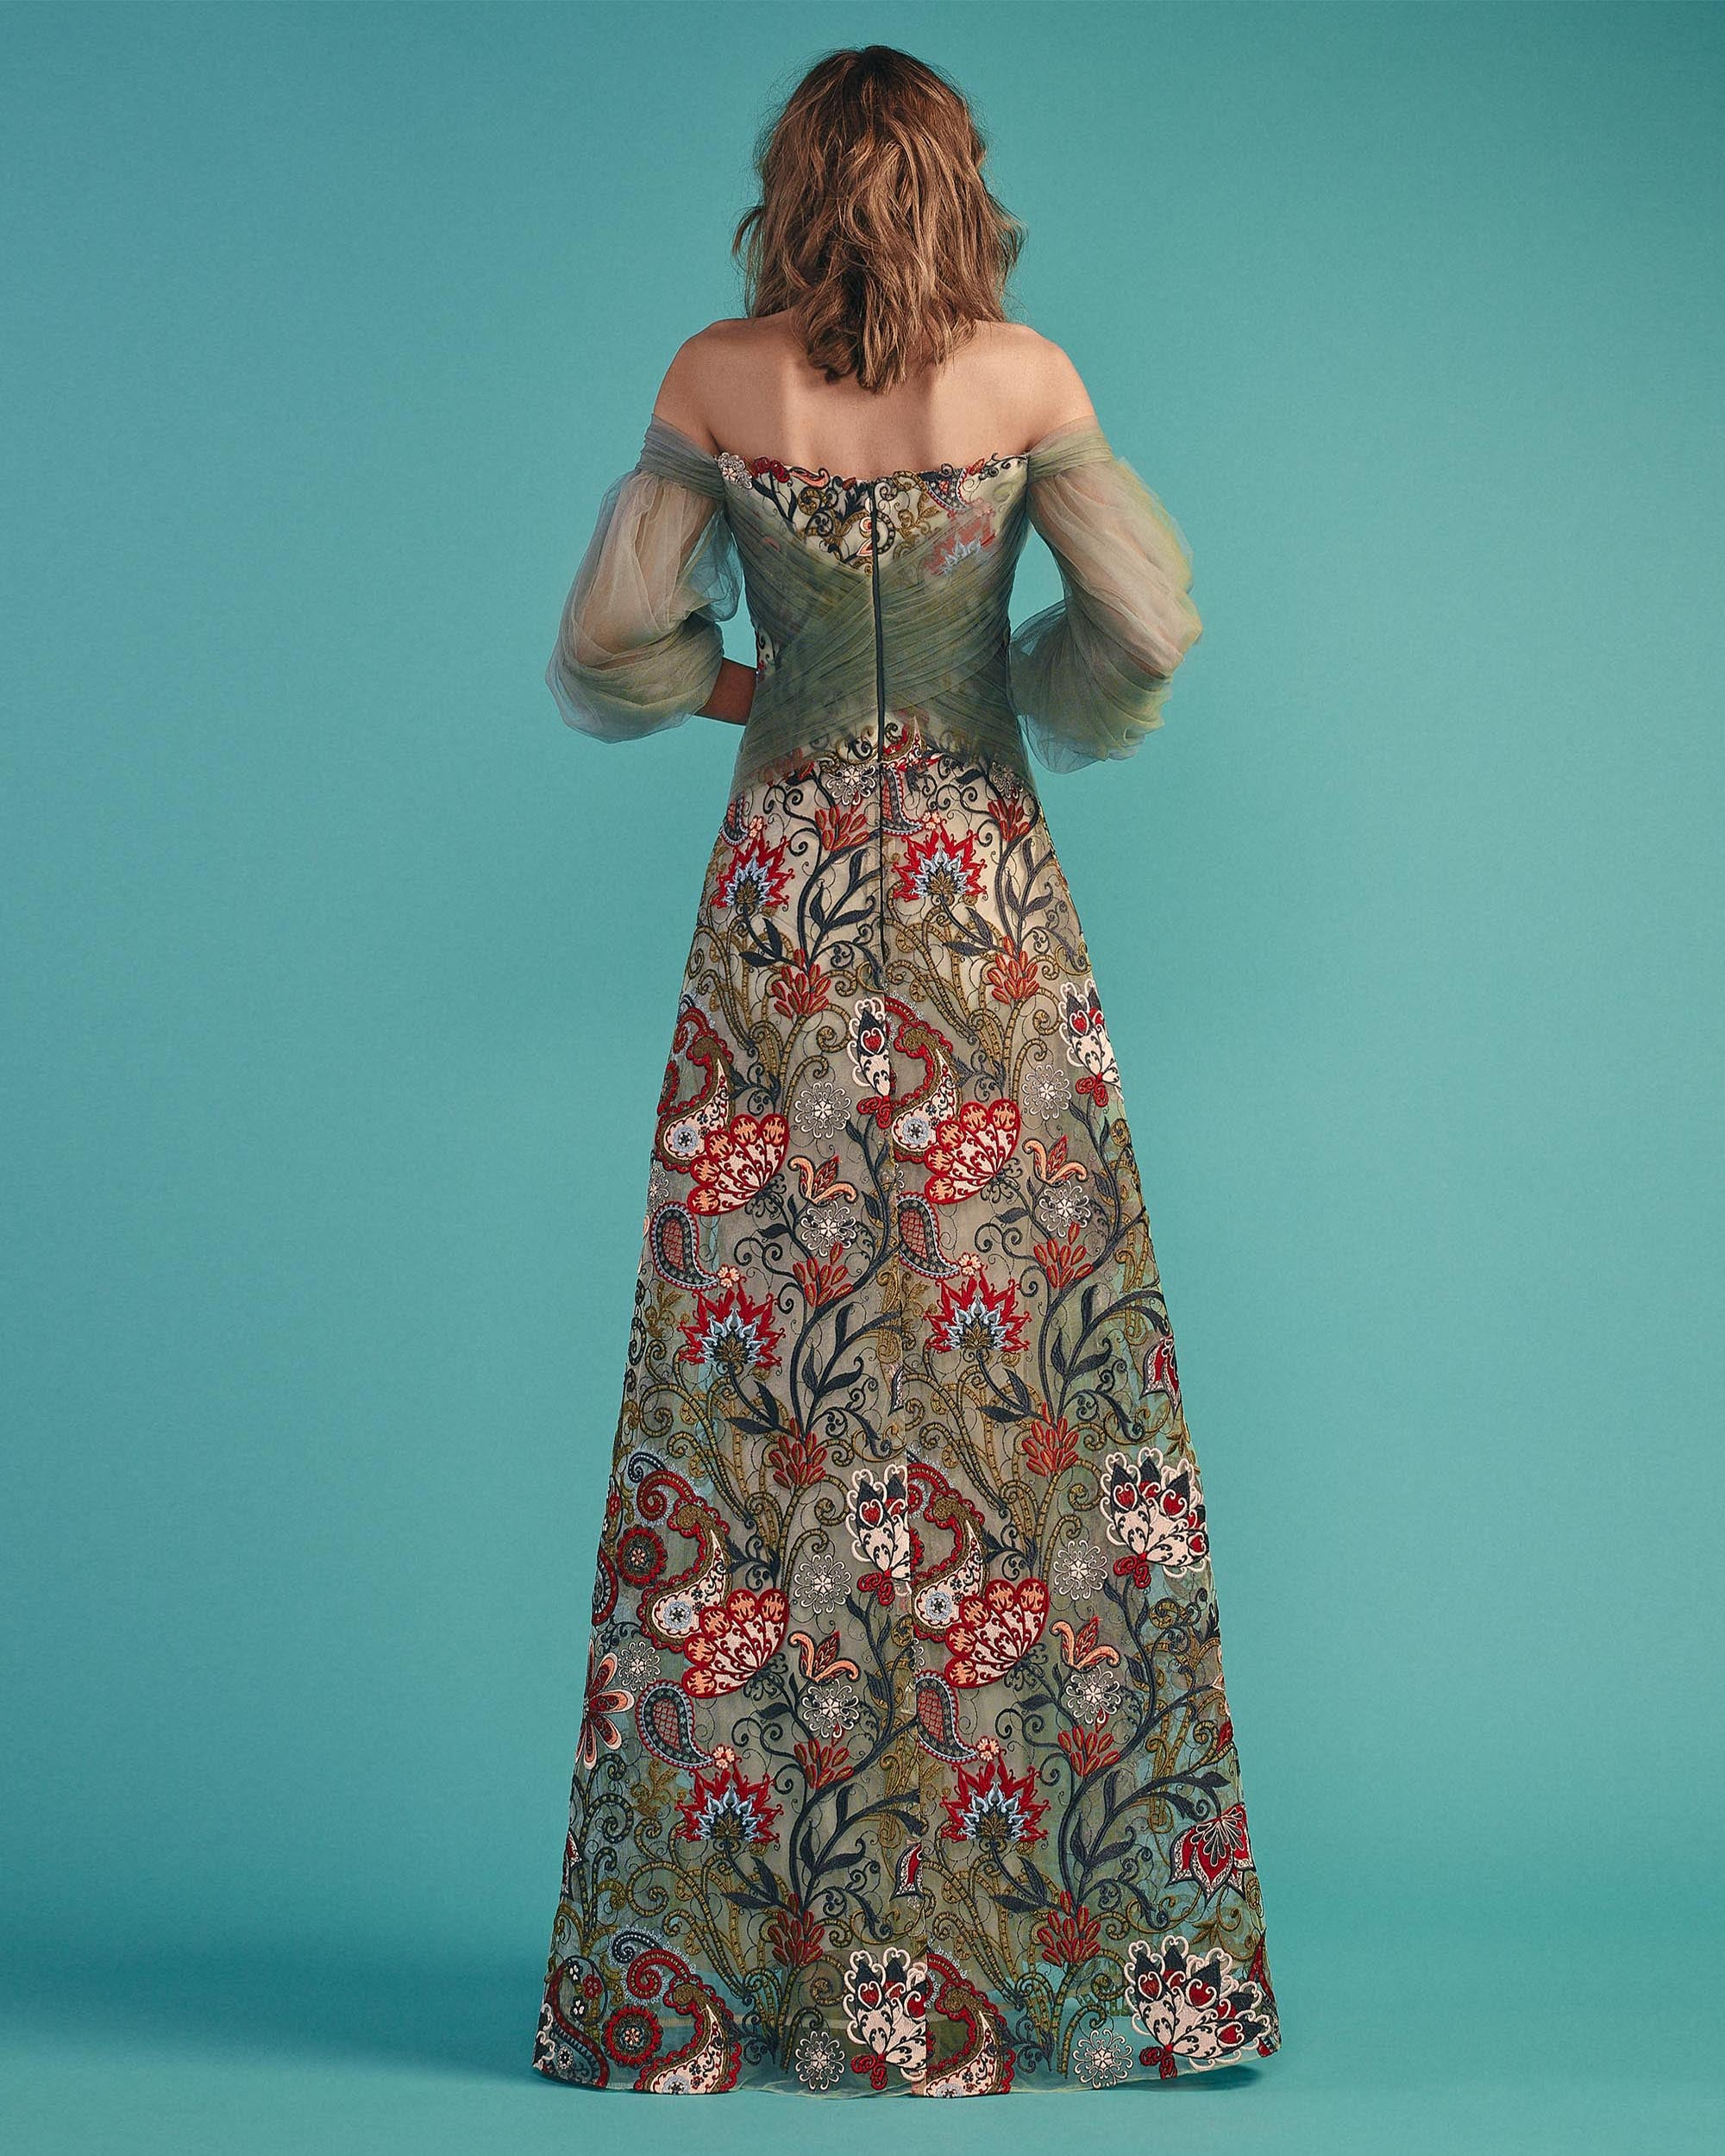 Floral Embroideries Dress